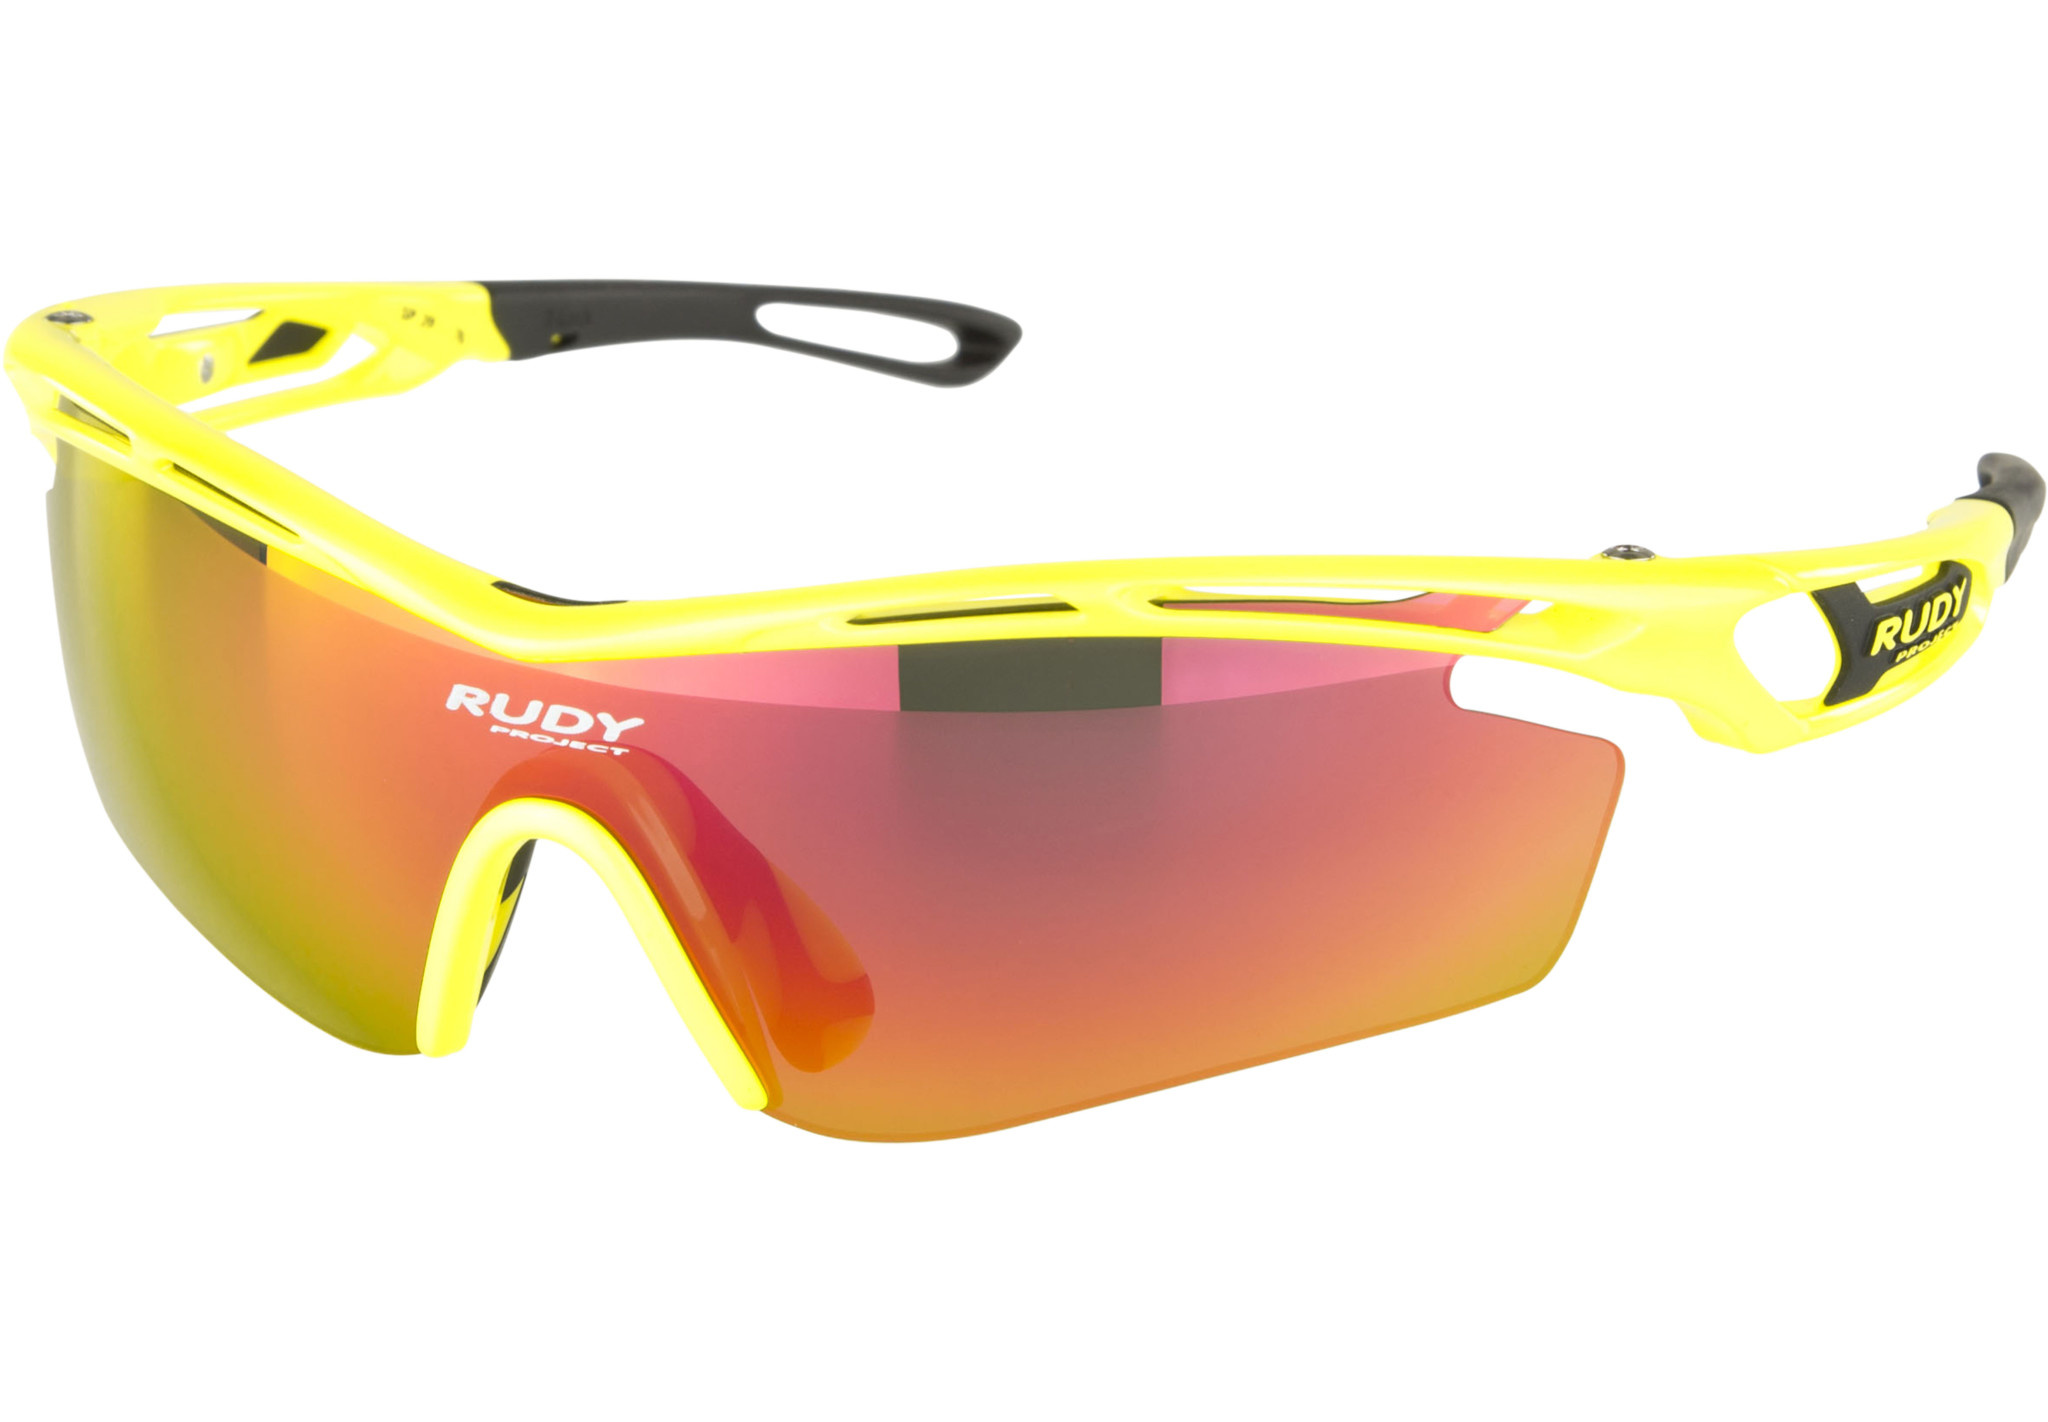 Rudy Project TRALYX SX YELLOW FLUO GLOSS MULTILASER ORANGE